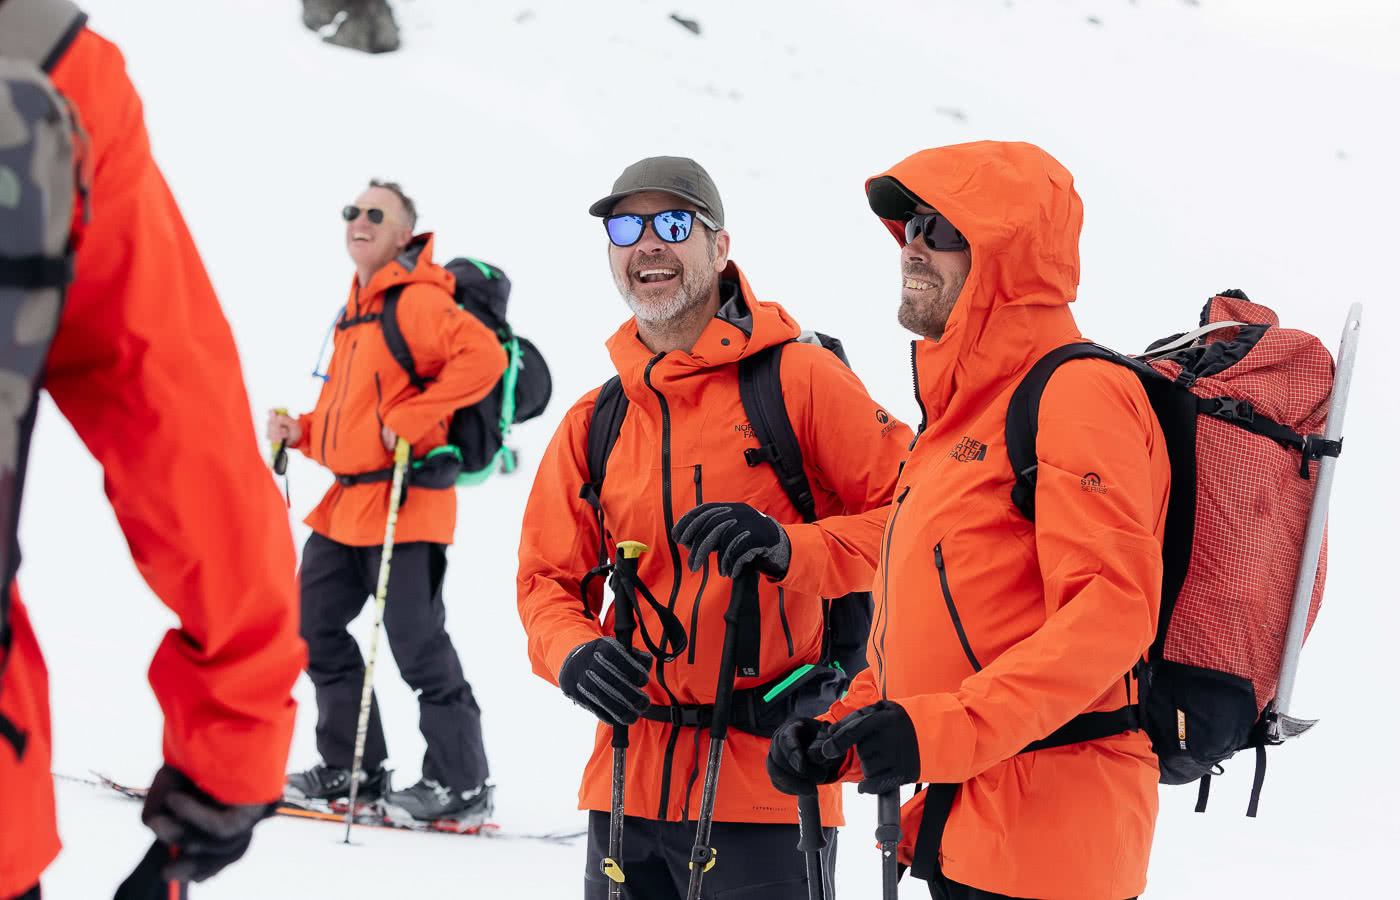 Just How Revolutionary Is FUTURELIGHT Waterproof Breathable Gear? We Tested It Out In NZ, photo by Mark Clinton, the Remarkables, The North Face, New Zealand, skiing, skinning up, Paul Karis